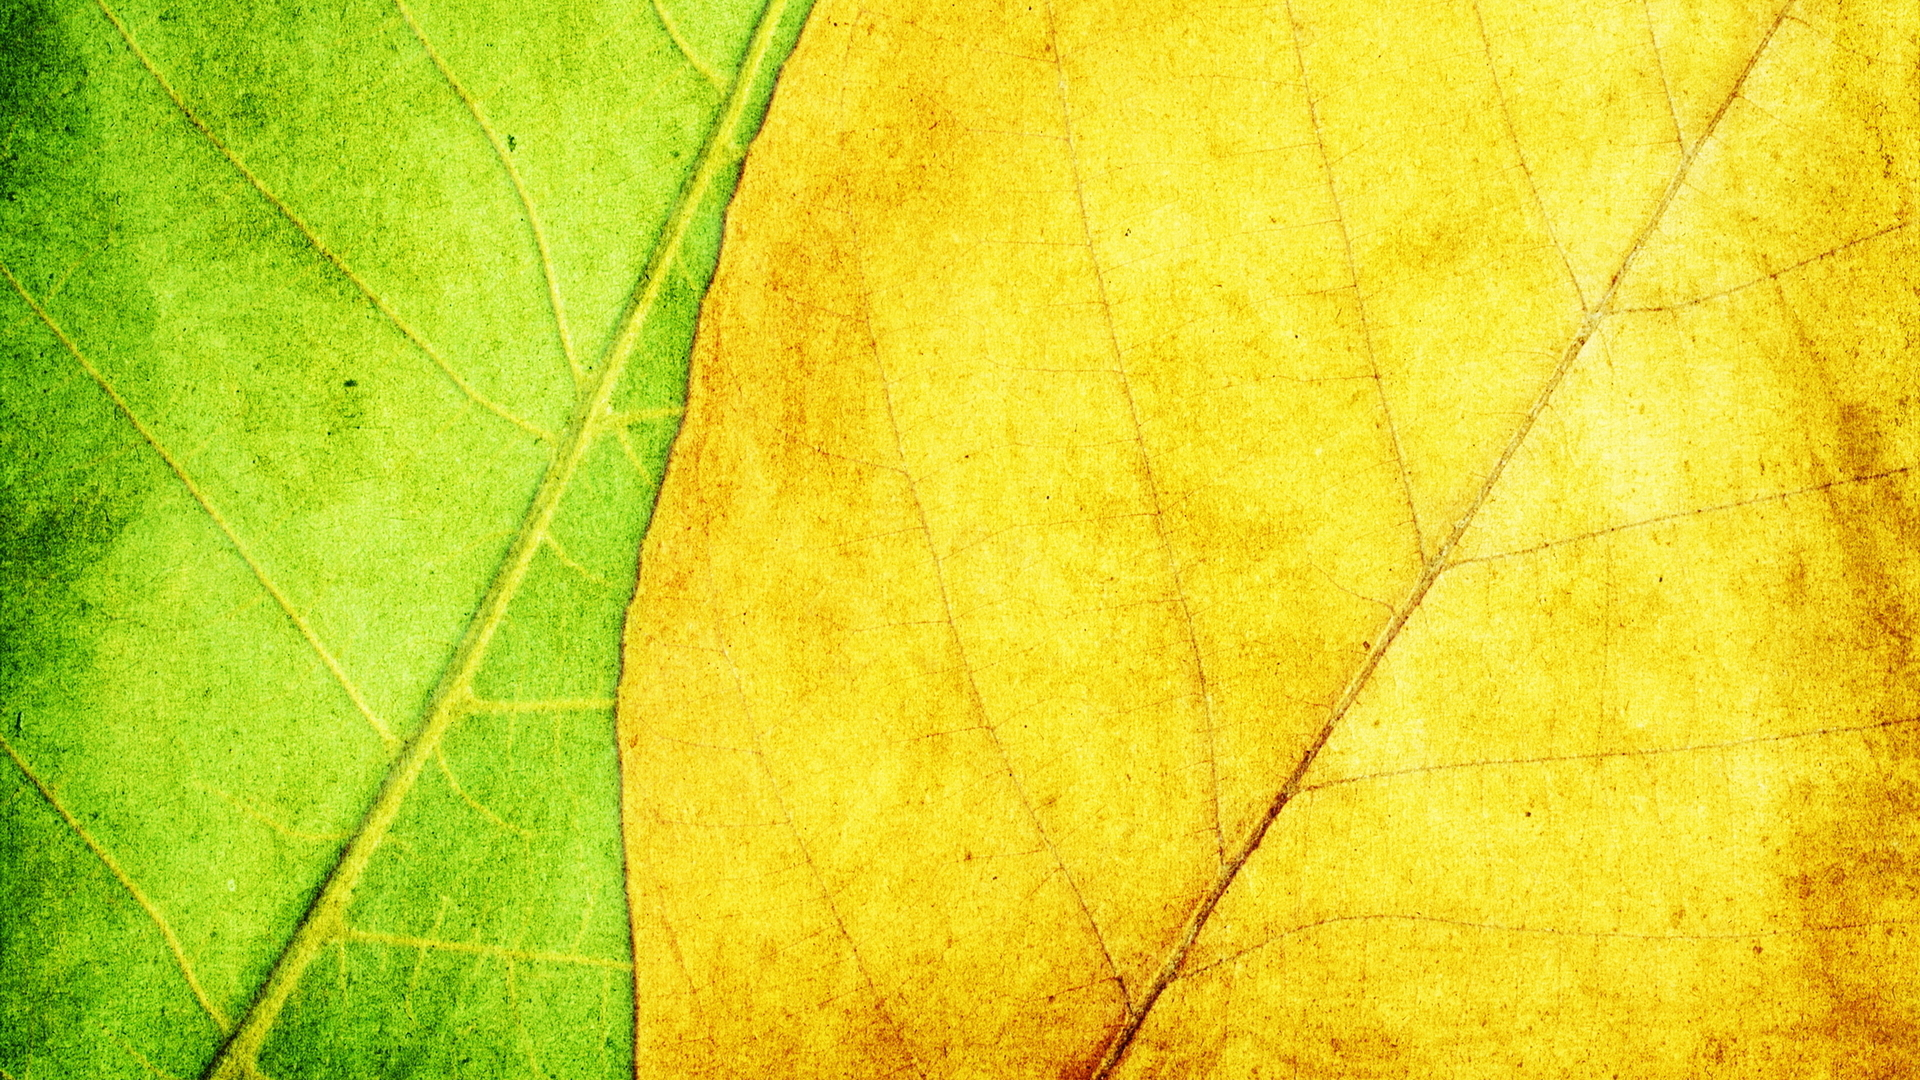 yellow and green leaf, download photo, texture, leaves